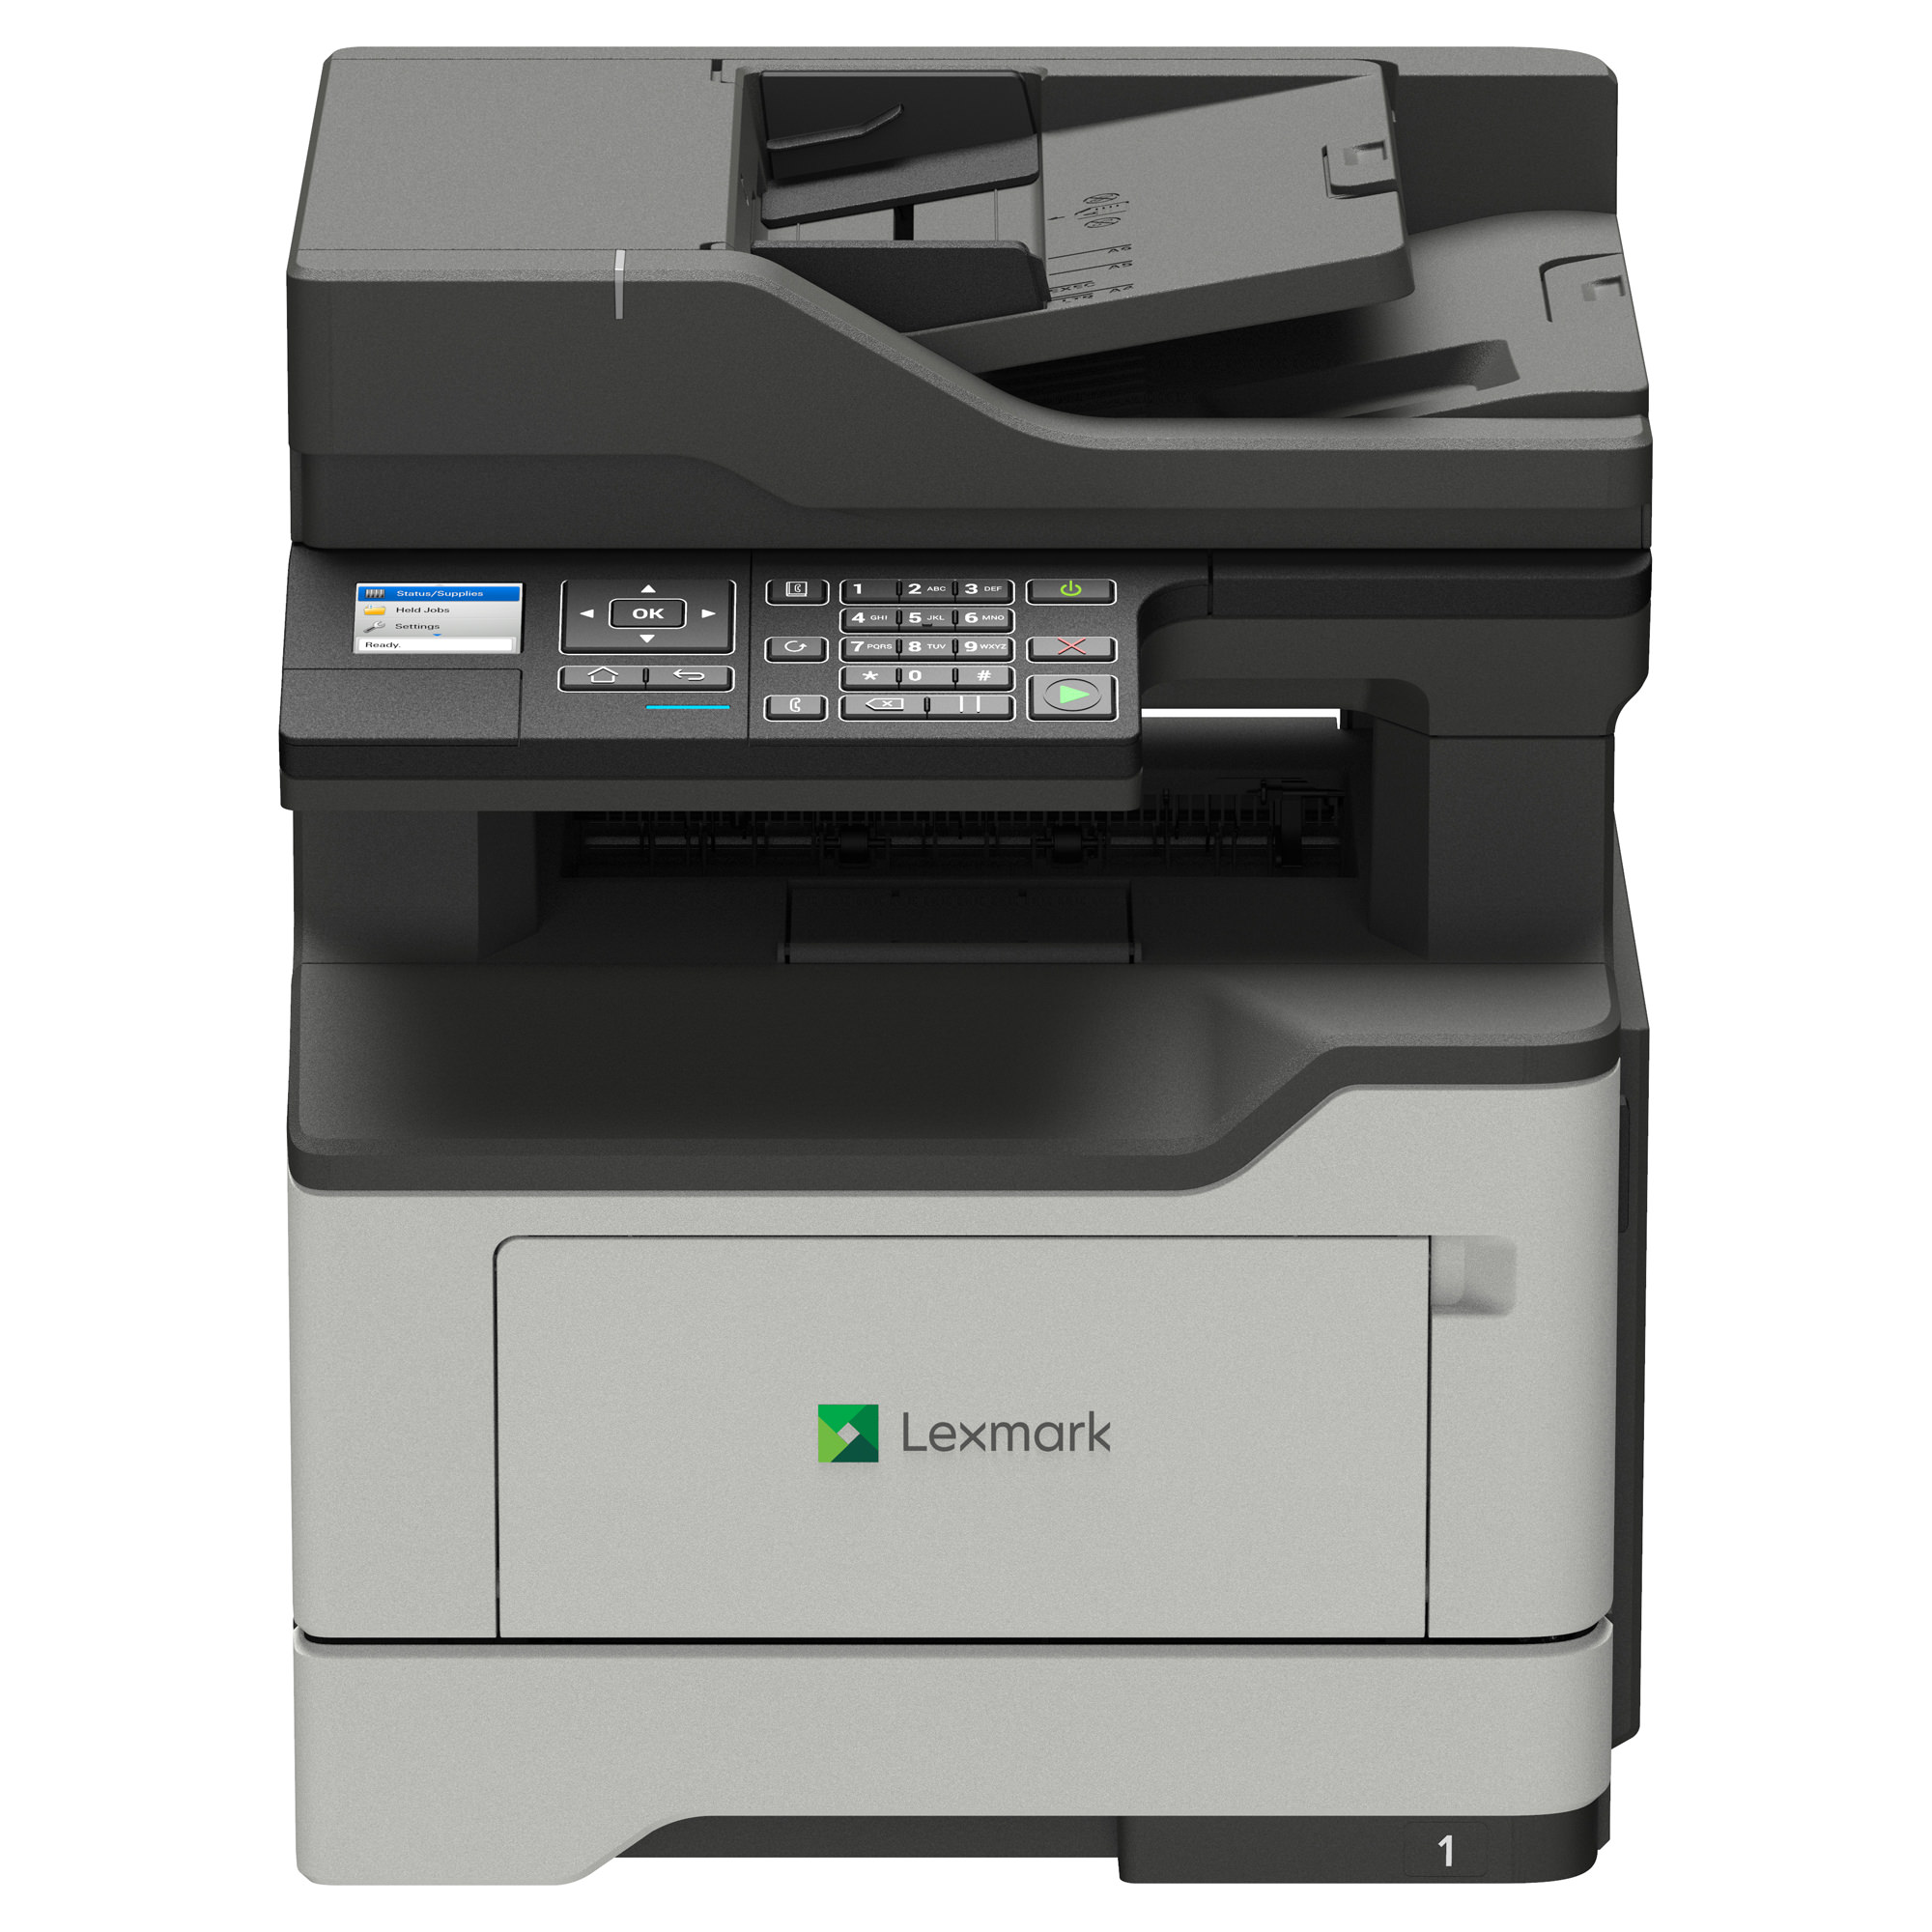 Lexmark MX321adn Mono Multifunction Laser Printer - Copy, Fax, Scan